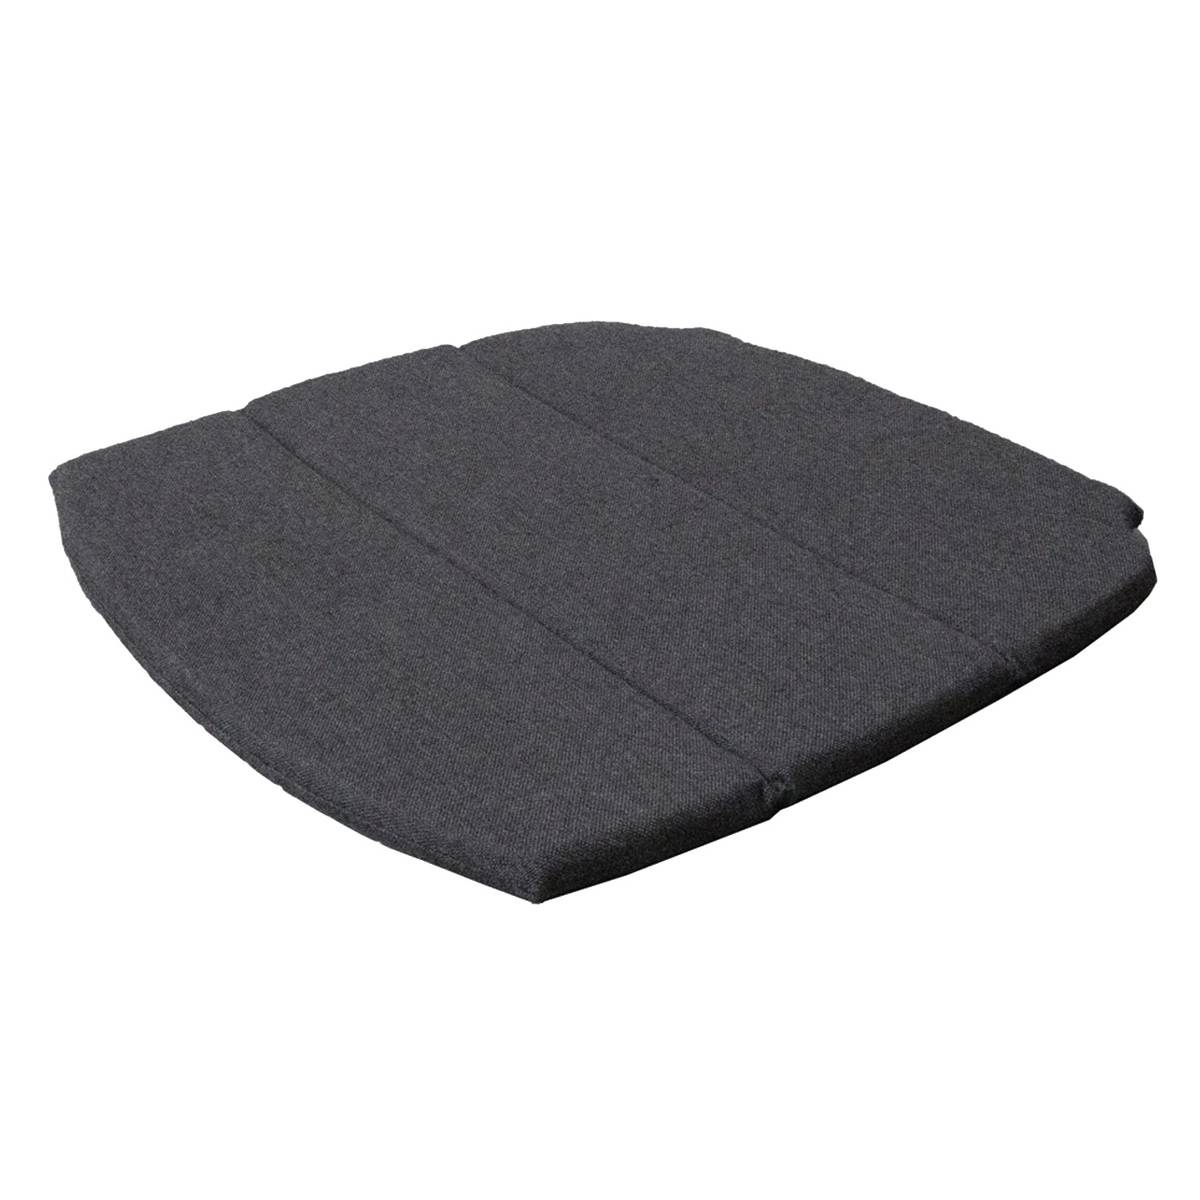 Cane-line Seat cushion for stackable Breeze dining chair, black